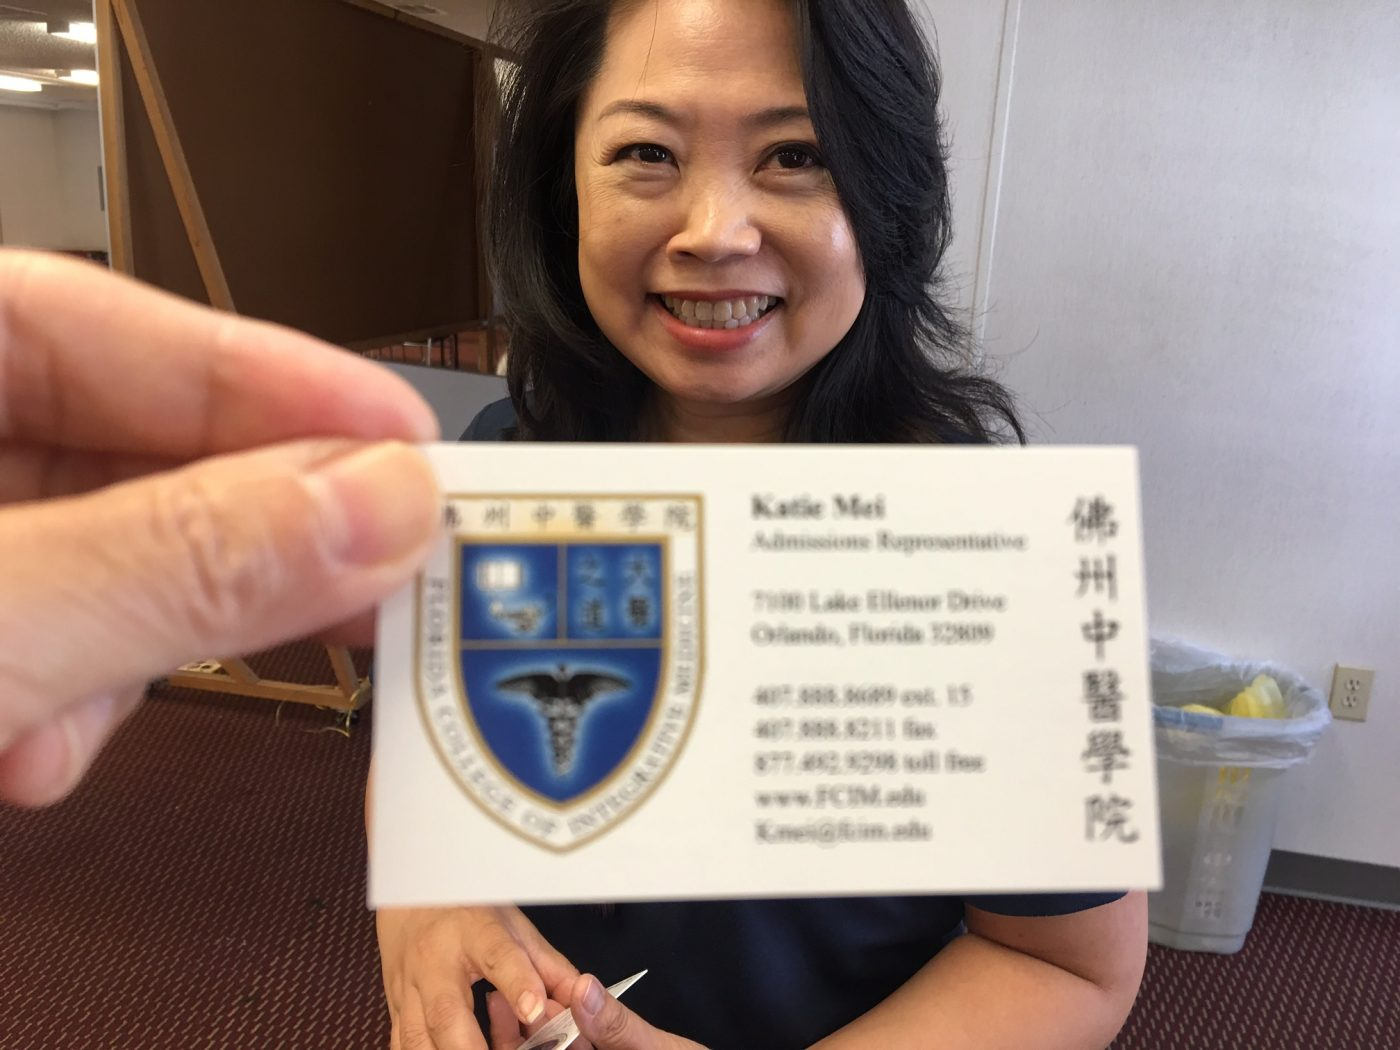 FCIM, Florida College of Integrative Medicine-Katie Mei, Admissions Rep